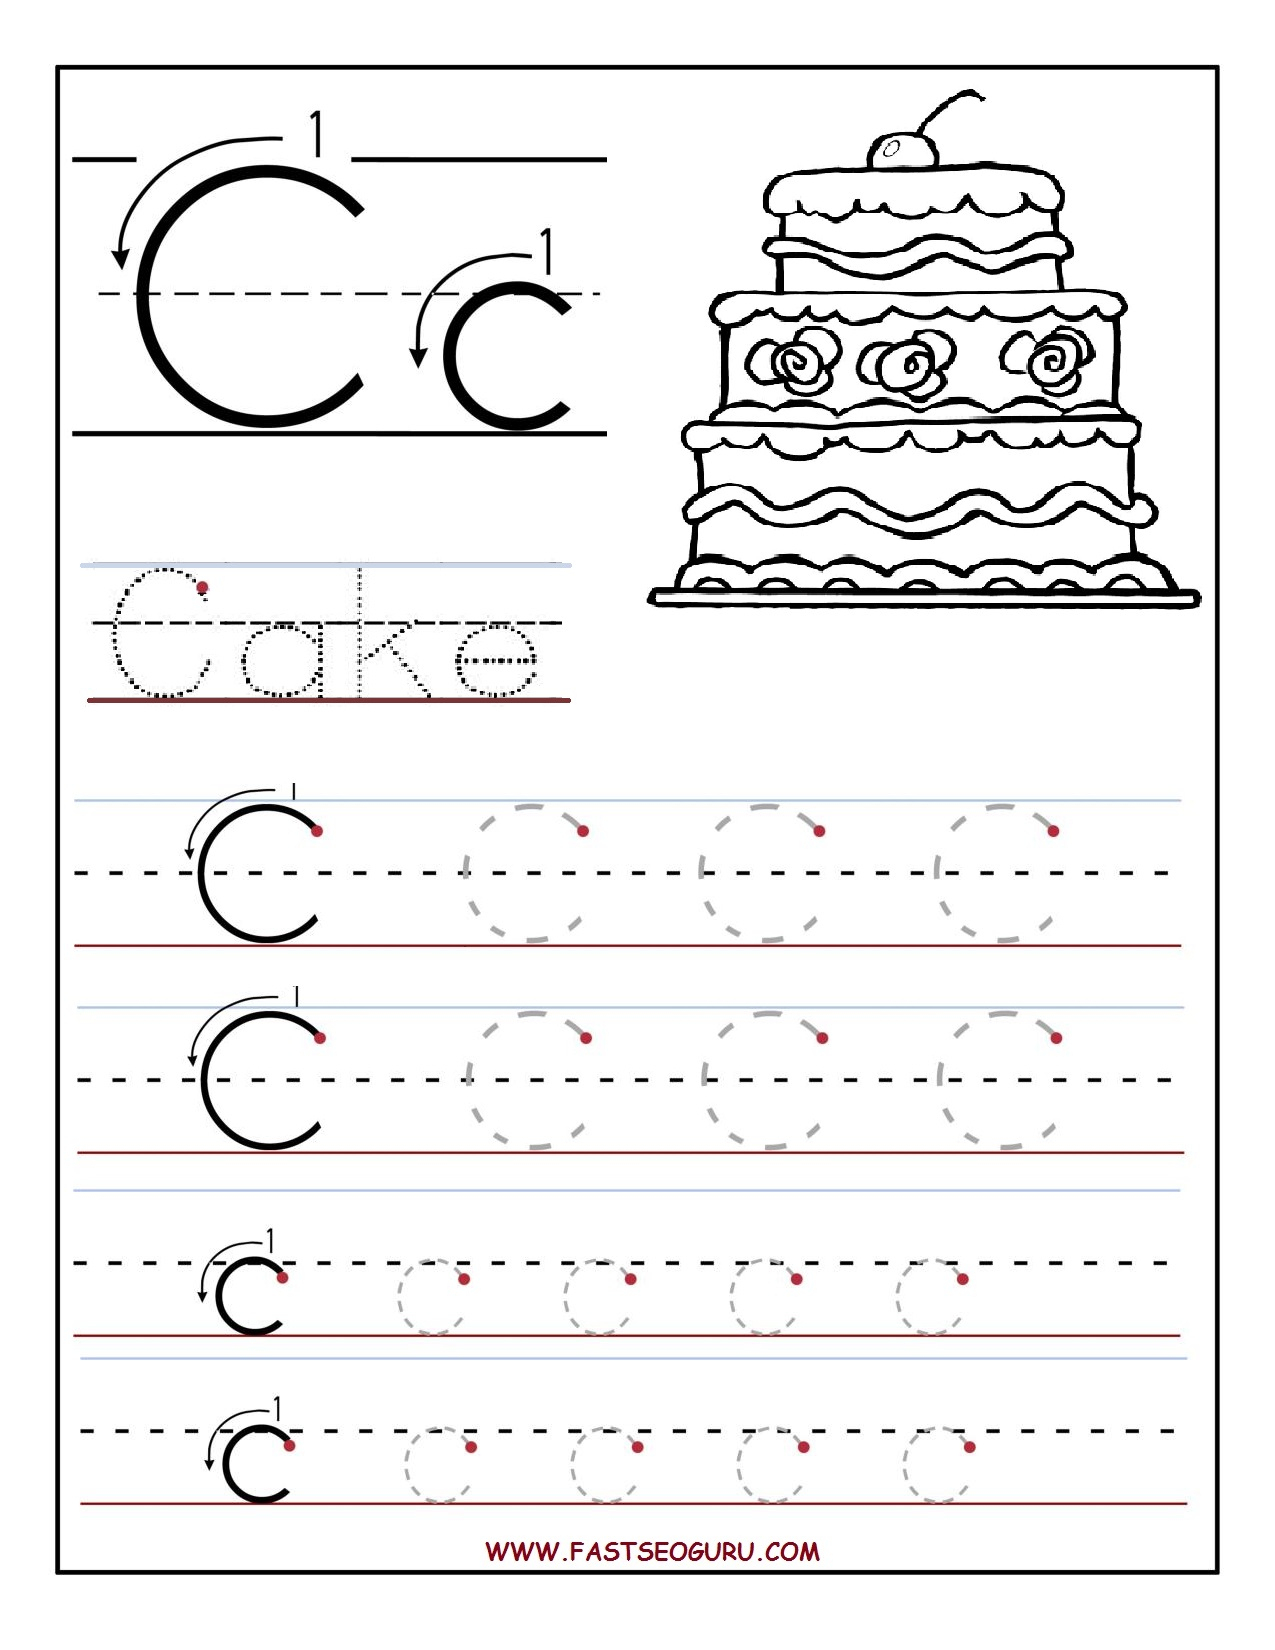 Letter C Worksheets | Gplusnick - Free Printable Letter C Worksheets